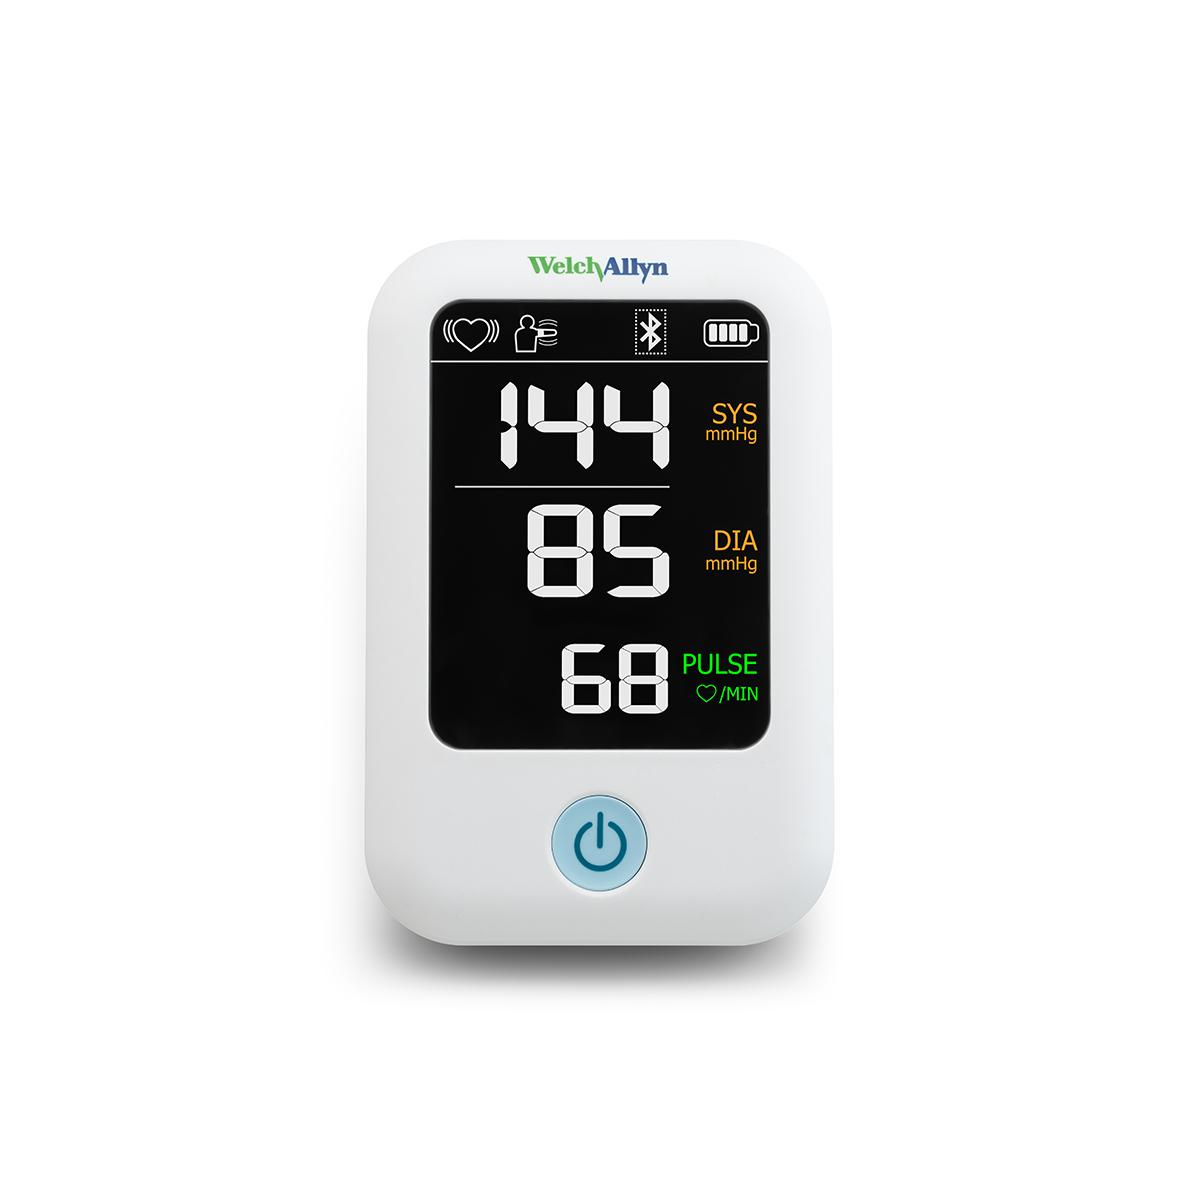 Welch Allyn Home Blood Pressure Monitor front view